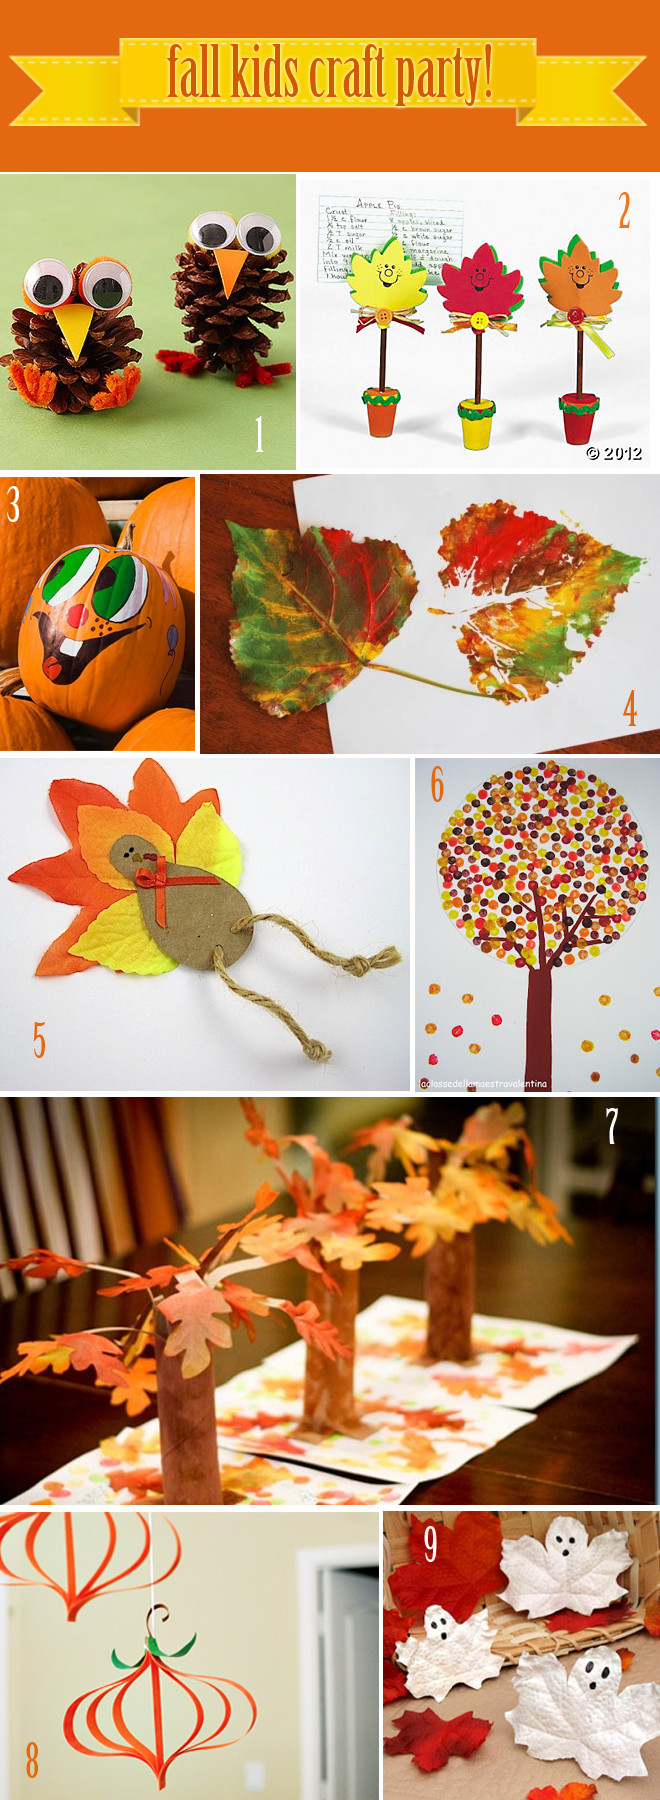 Best ideas about Fall Craft Ideas . Save or Pin 9 Fall Craft Ideas For Kids Now.